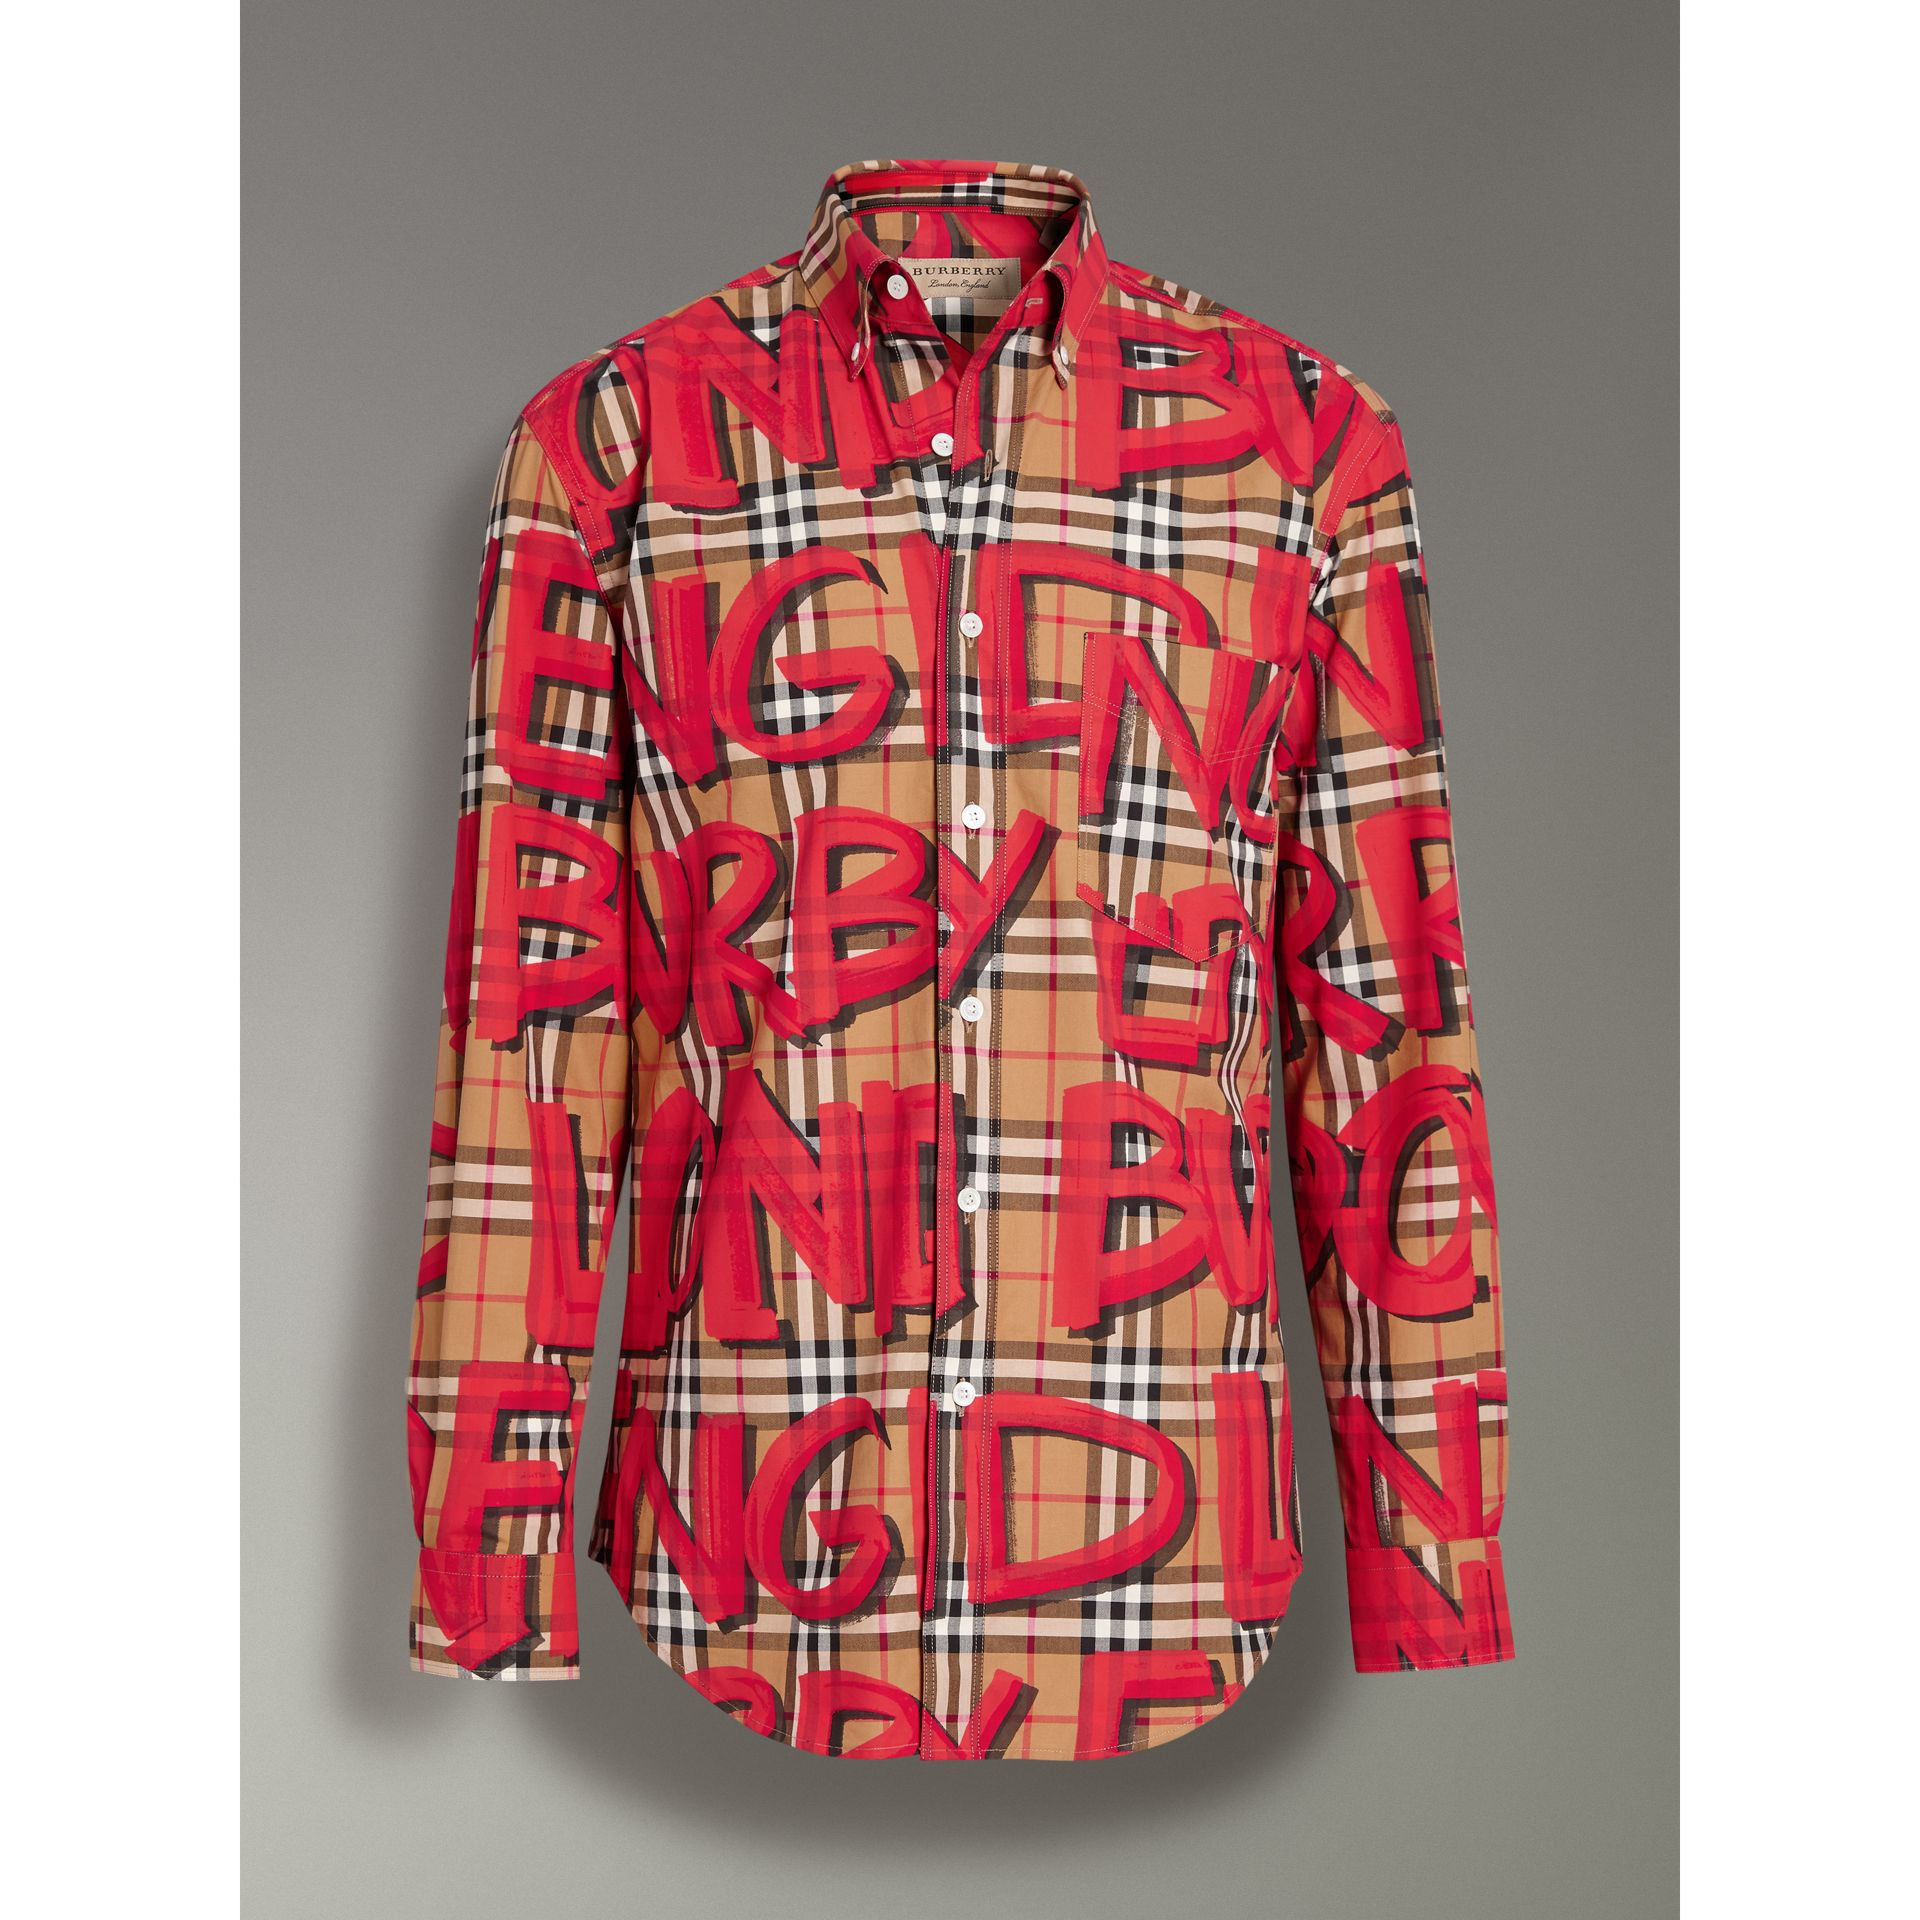 Graffiti Print Vintage Check Shirt in Bright Red - Men | Burberry - gallery image 3